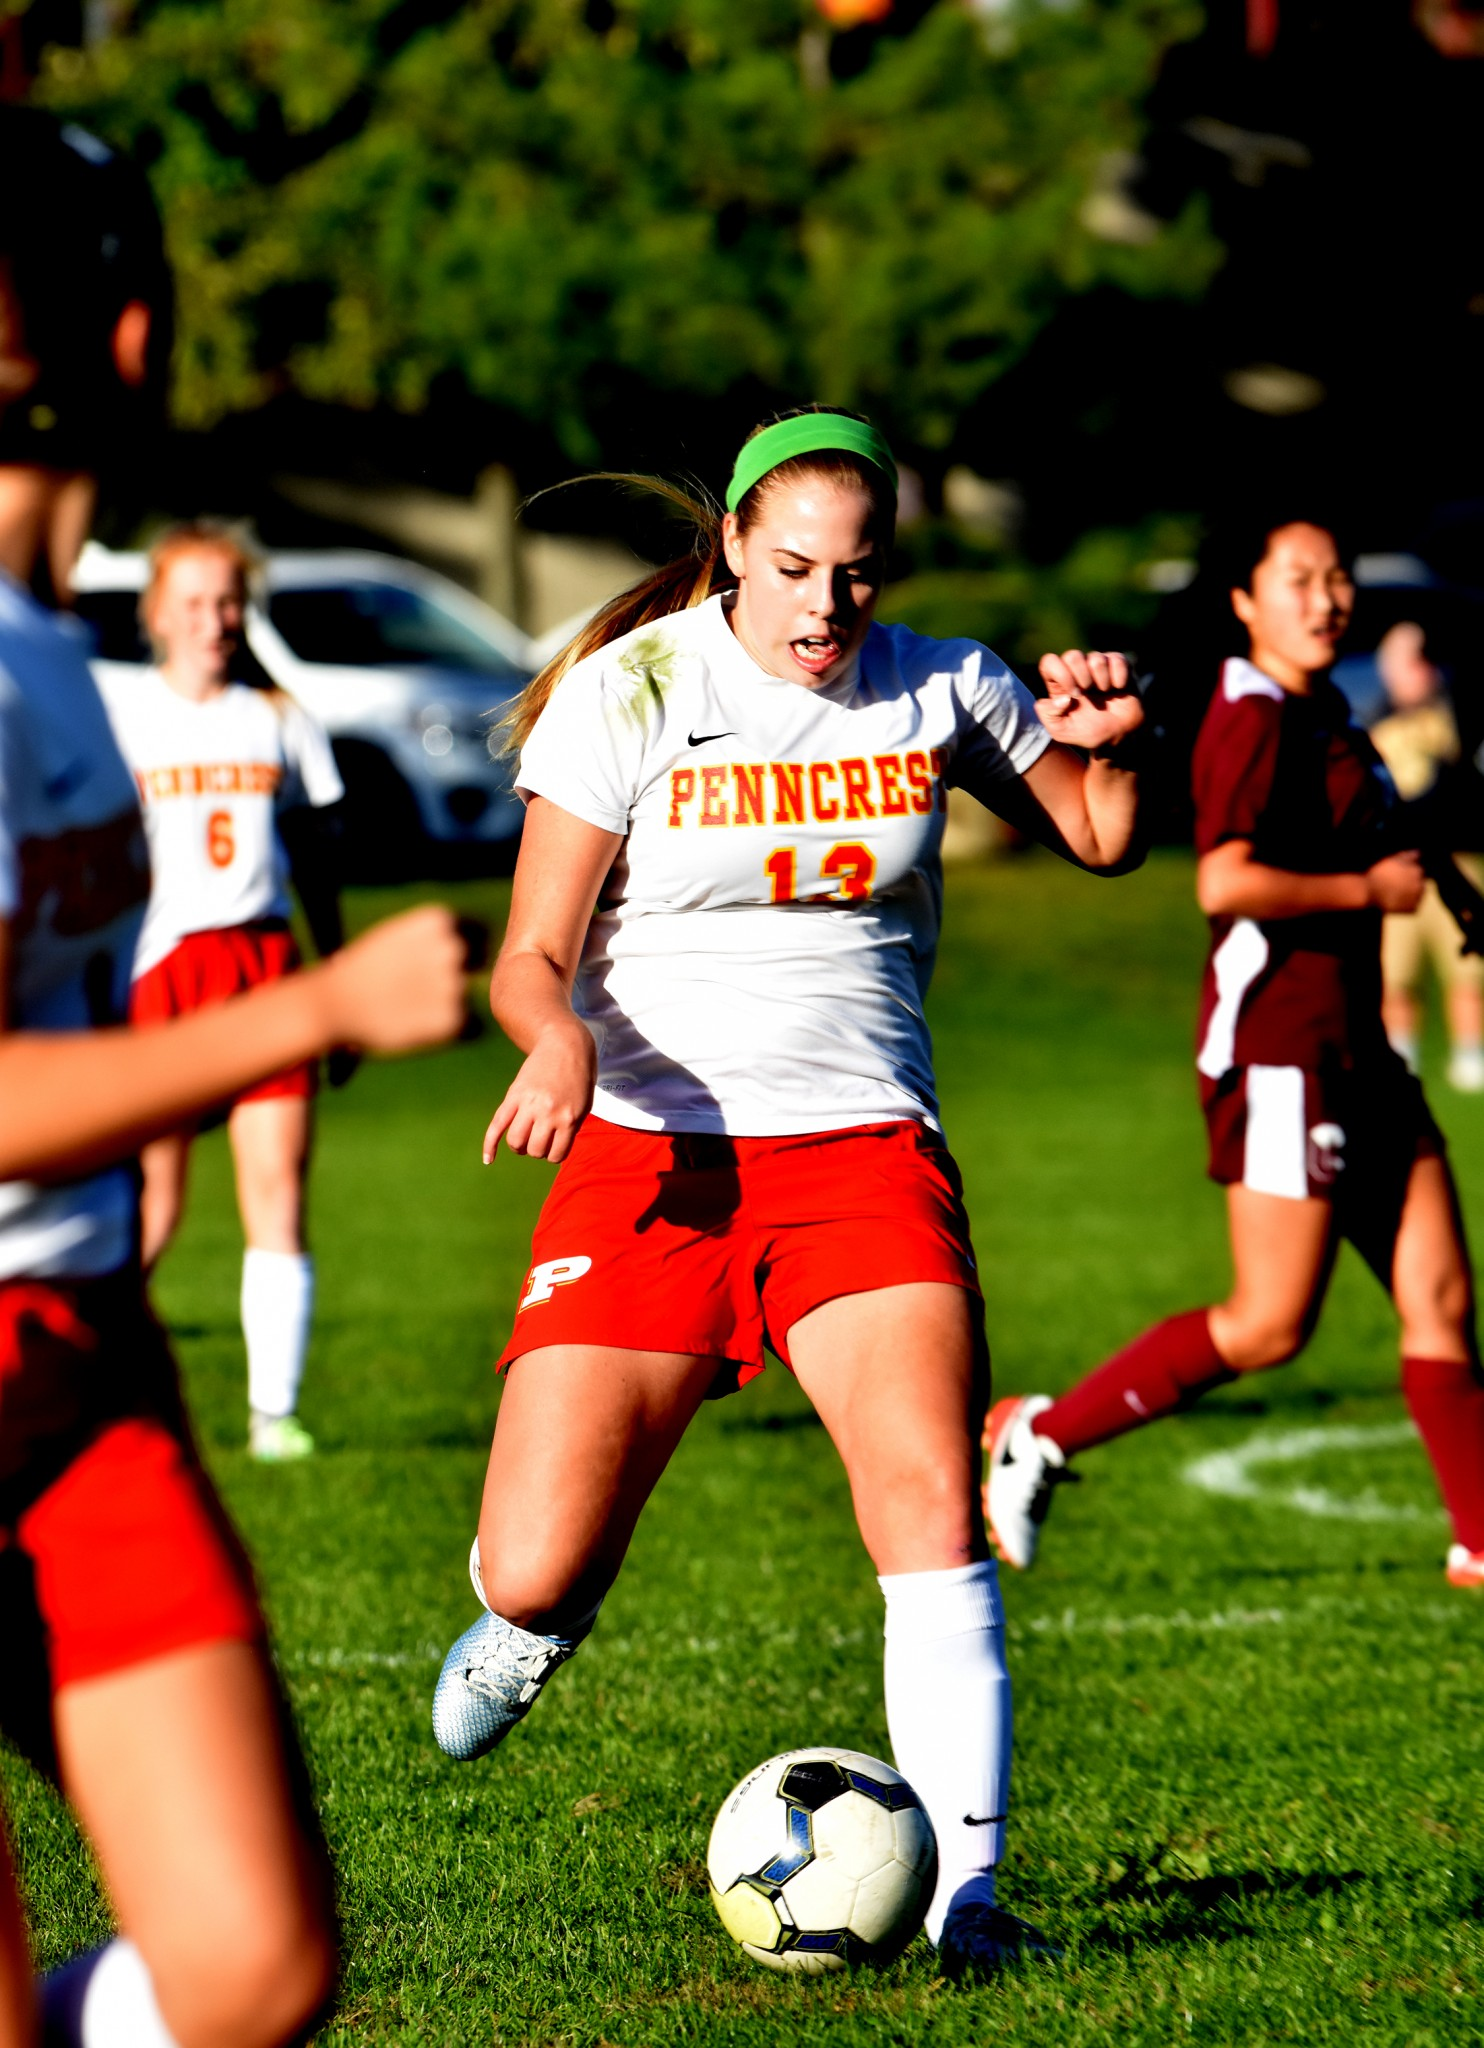 Penncrest's Gia Martyn scored a goal and helped set up another Tuesday as Penncrest drew with Conestoga, which is still unbeaten. (Digital First Media/Anne Neborak)